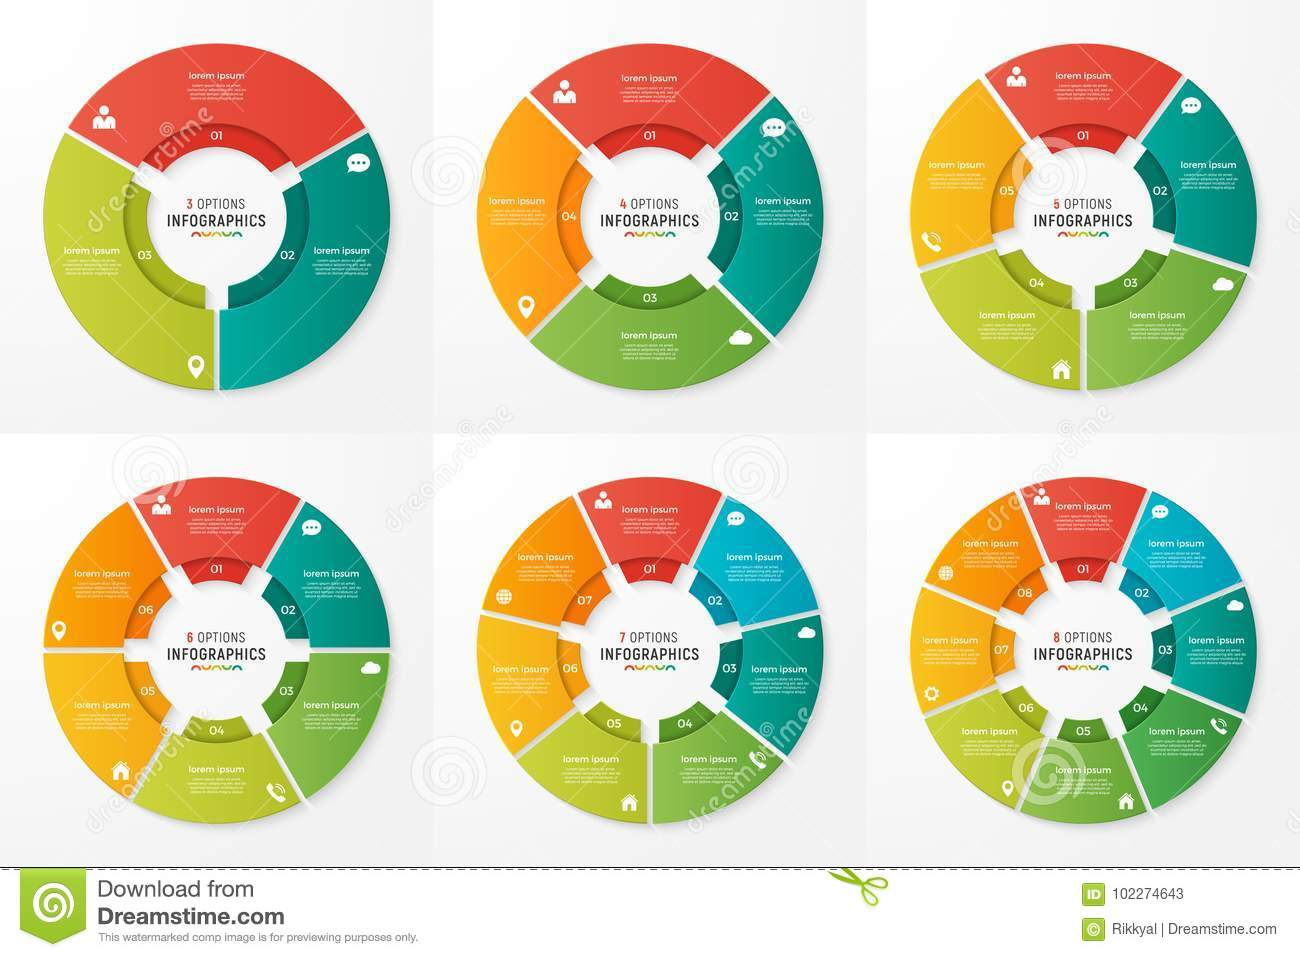 Vector circle chart infographic templates for presentations, adv